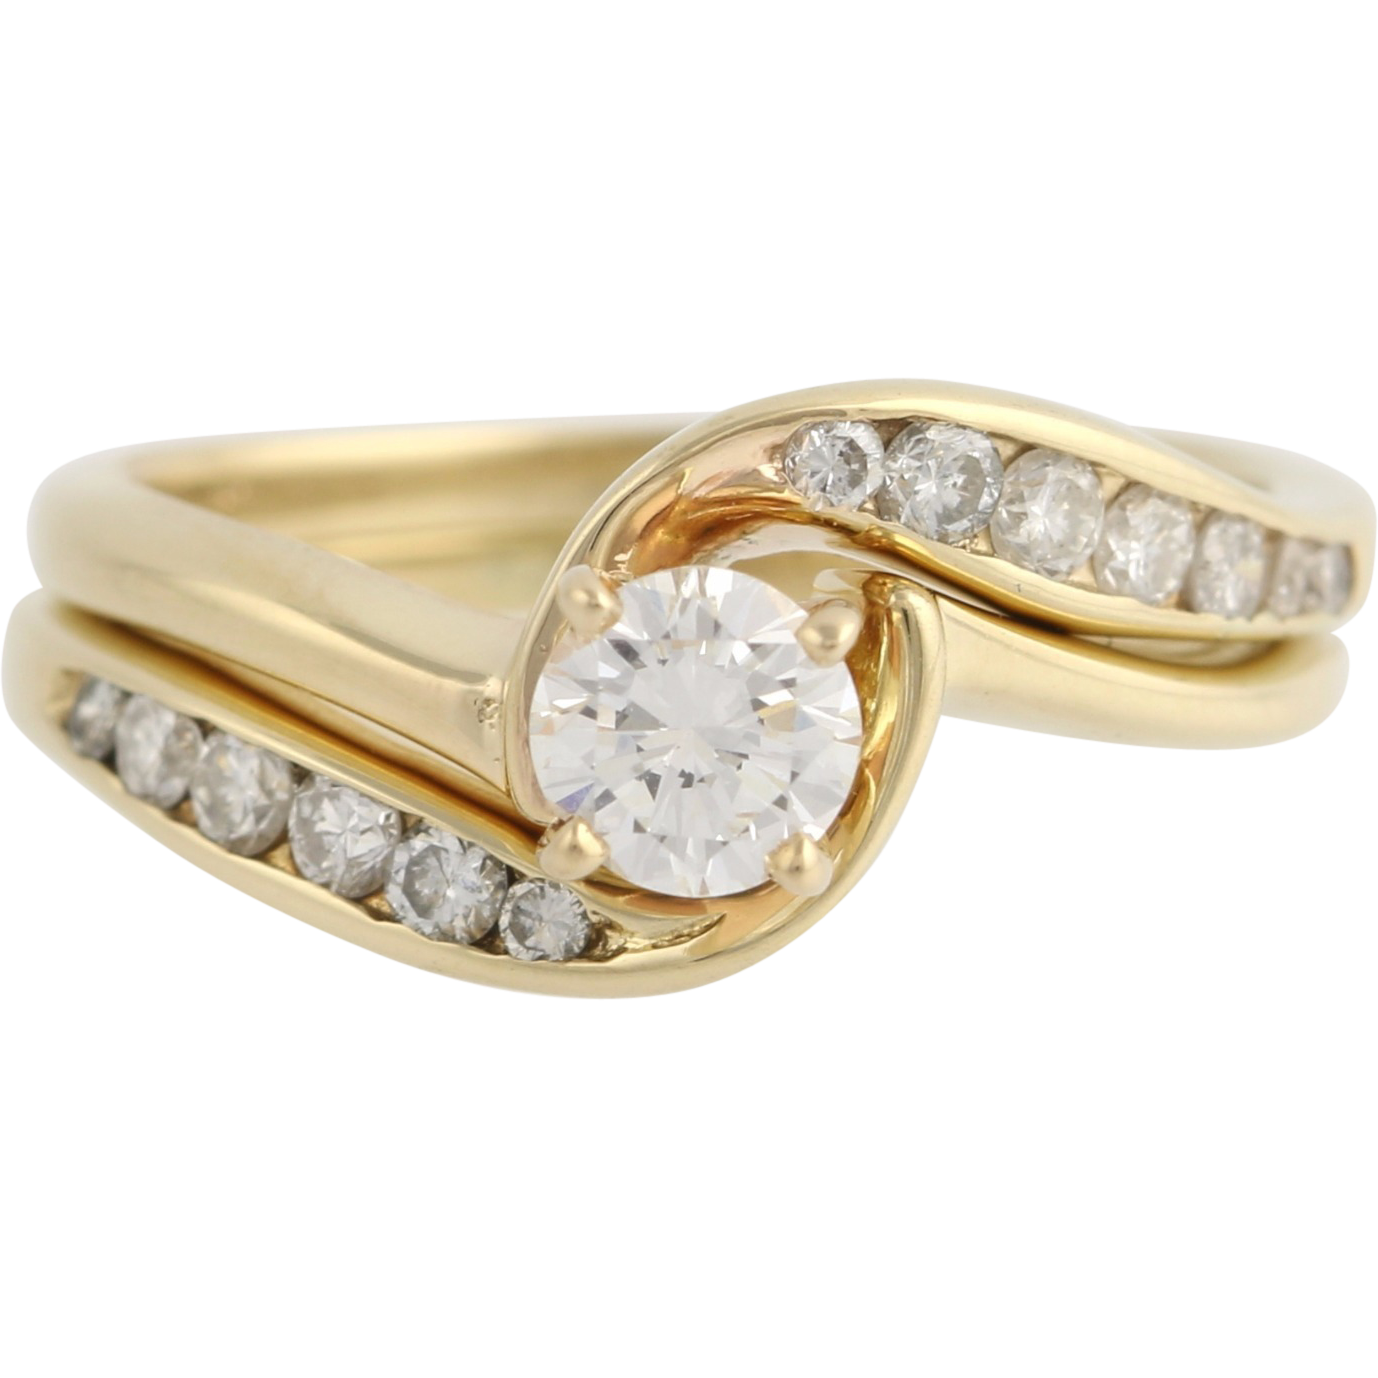 Diamond Engagement Ring & Wedding Band - 14k Yellow Gold Solitaire Bypass Estate